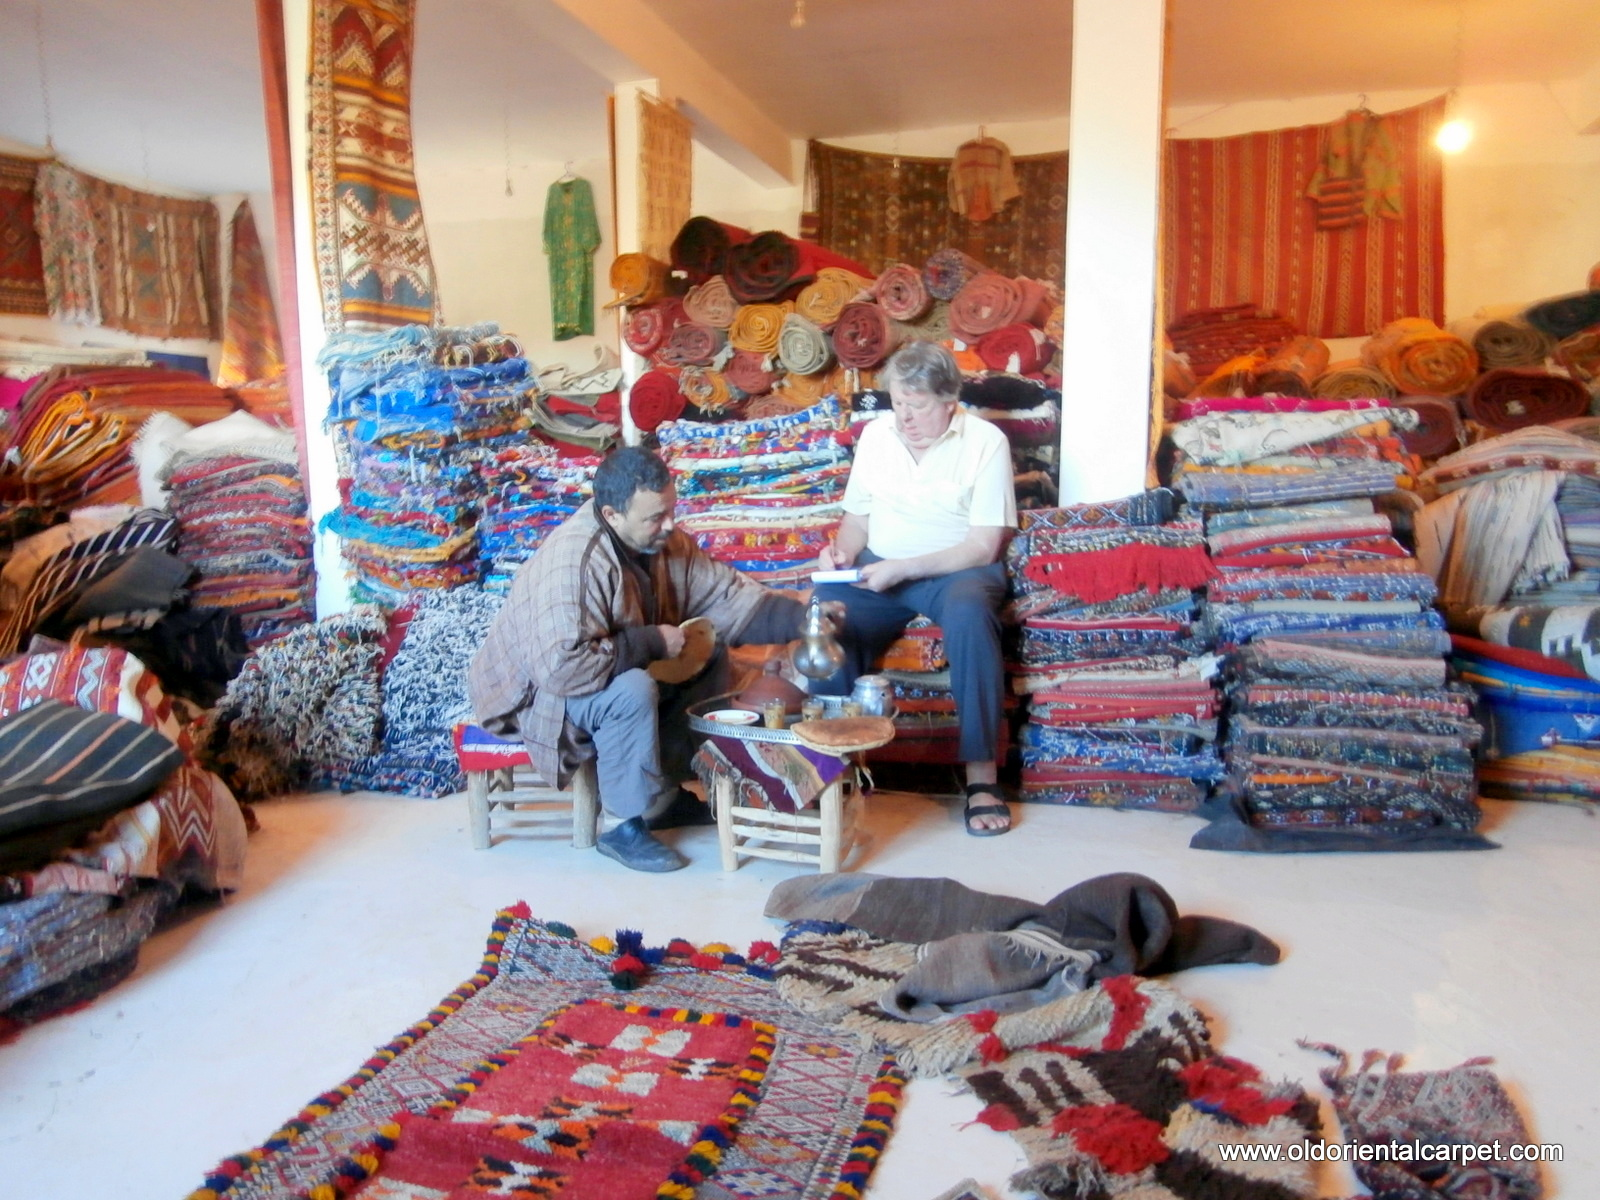 Ing Rugs Recently From A Berber Trader In The High Atlas Mountains Of Southern Morocco Bottom Photo Shows Afghans